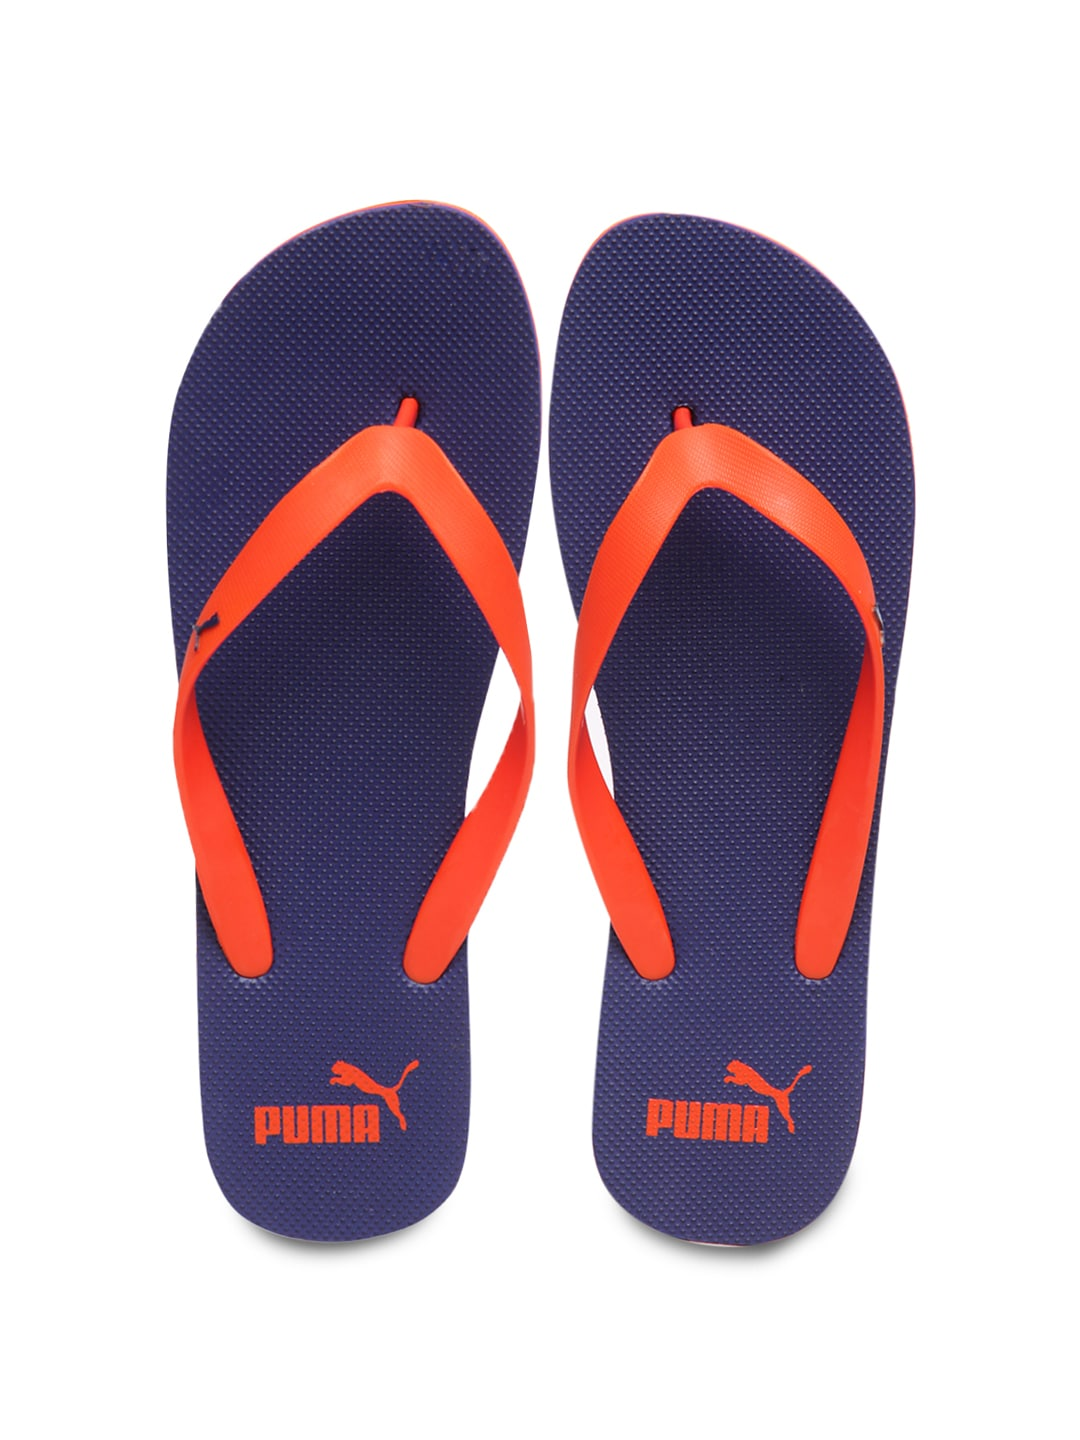 290f405db Women s Puma Flip Flops - Buy Puma Flip Flops for Women Online in India